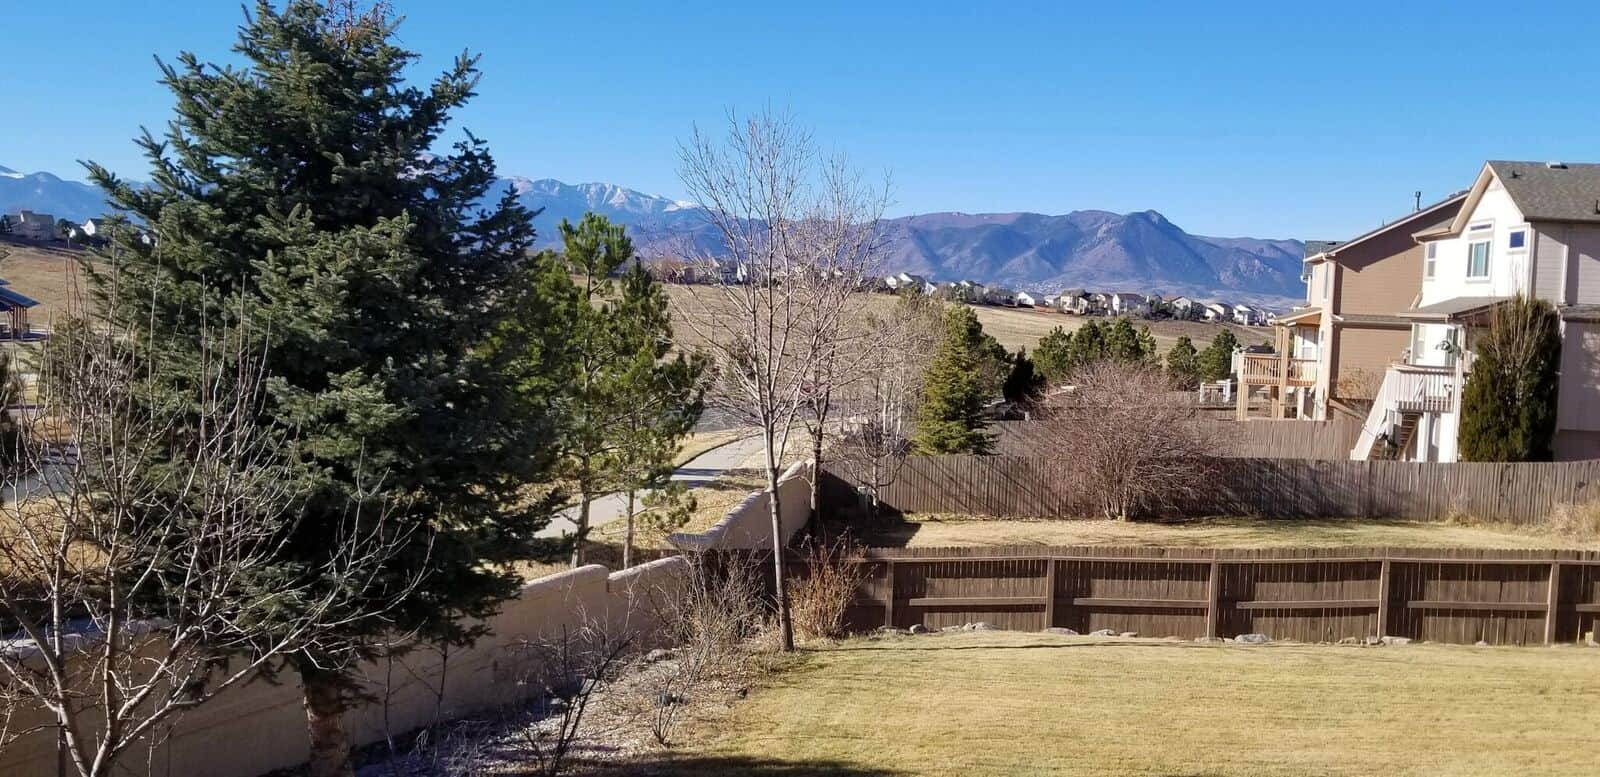 Mountain Views and Walking Trails behind the House